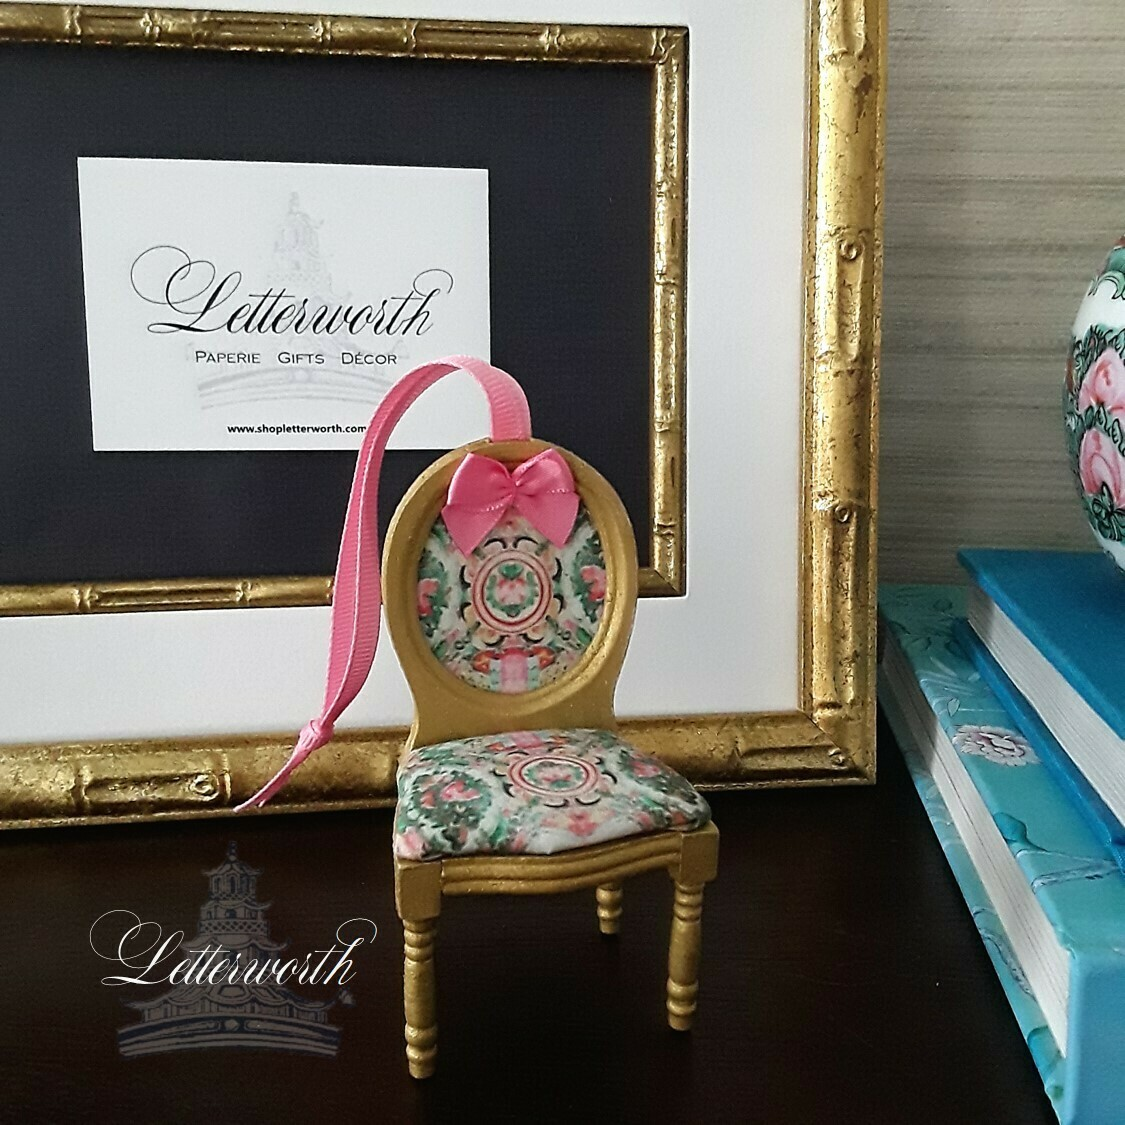 Handcrafted Rose Medallion Louis XVI Chair Ornament by Letterworth